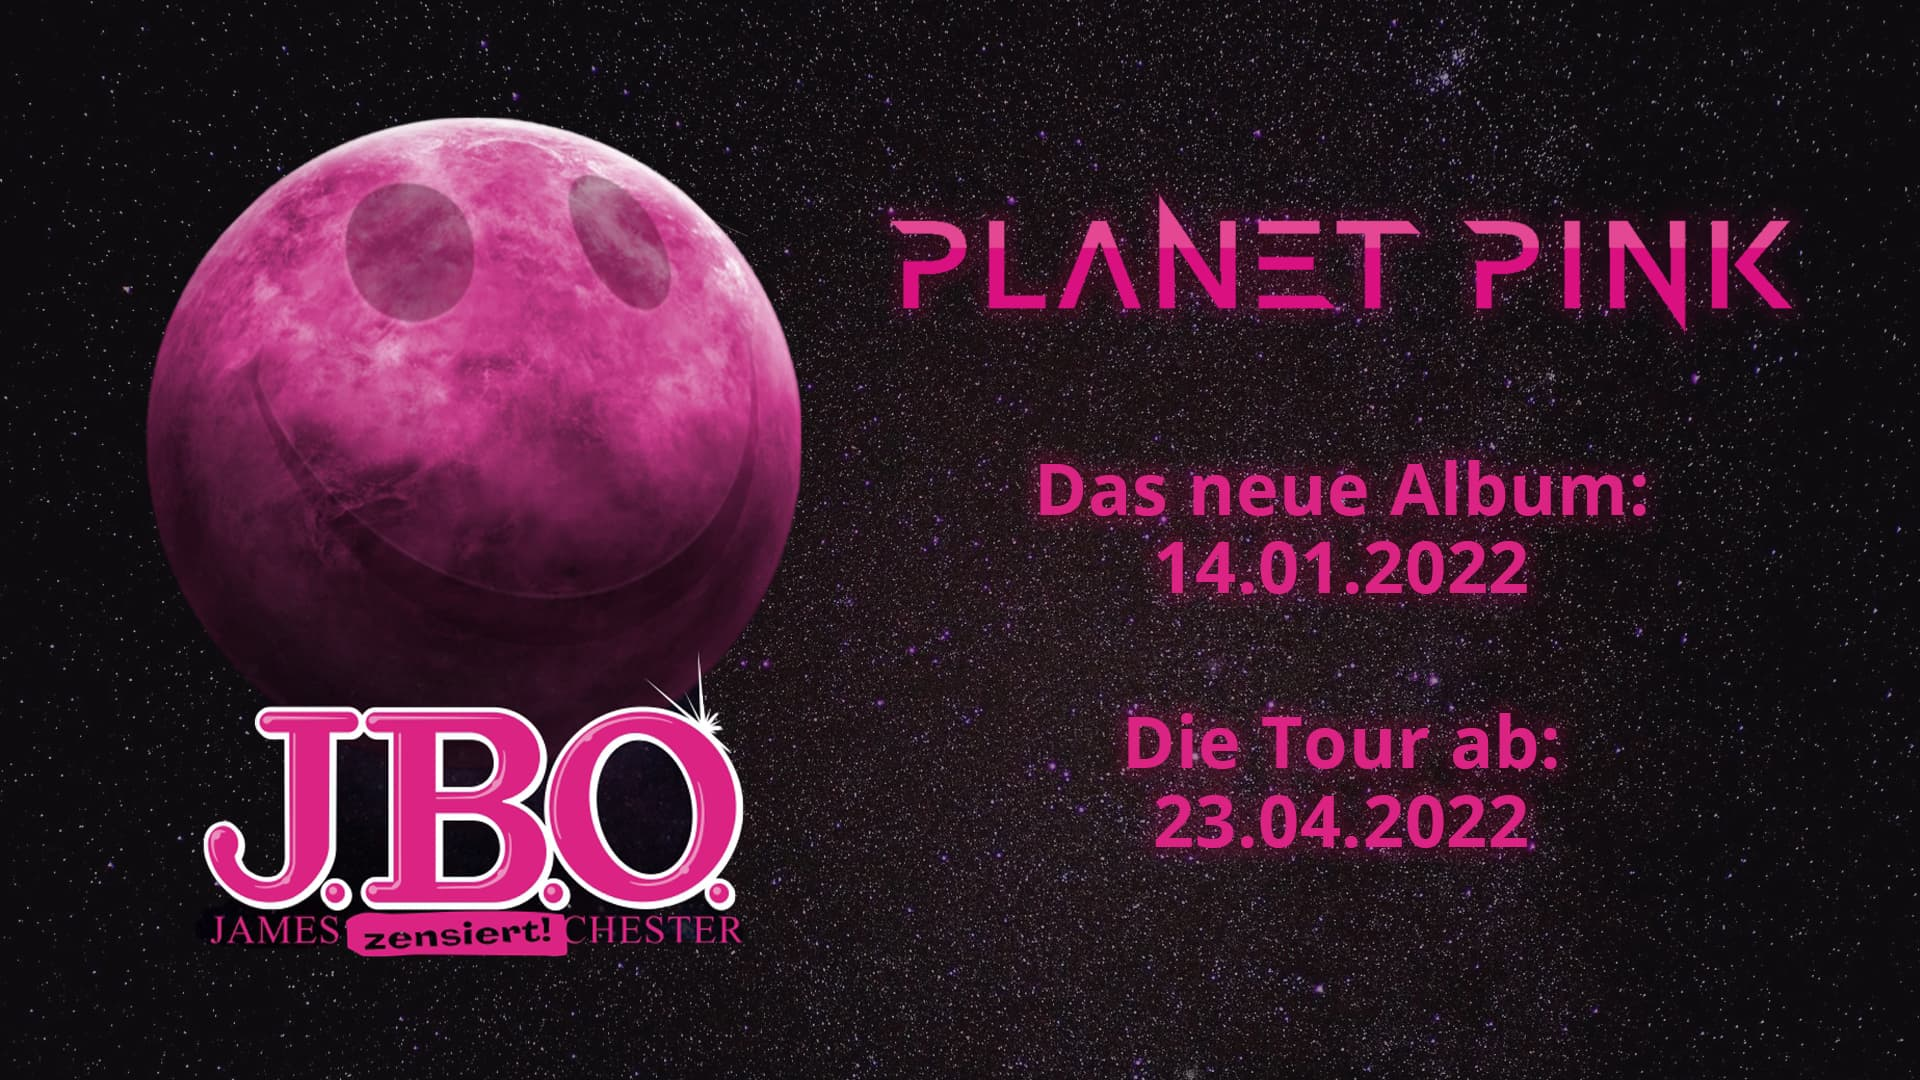 Planet Pink 2022: Freitag, 29. April 2022 - Hellraiser, Leipzig